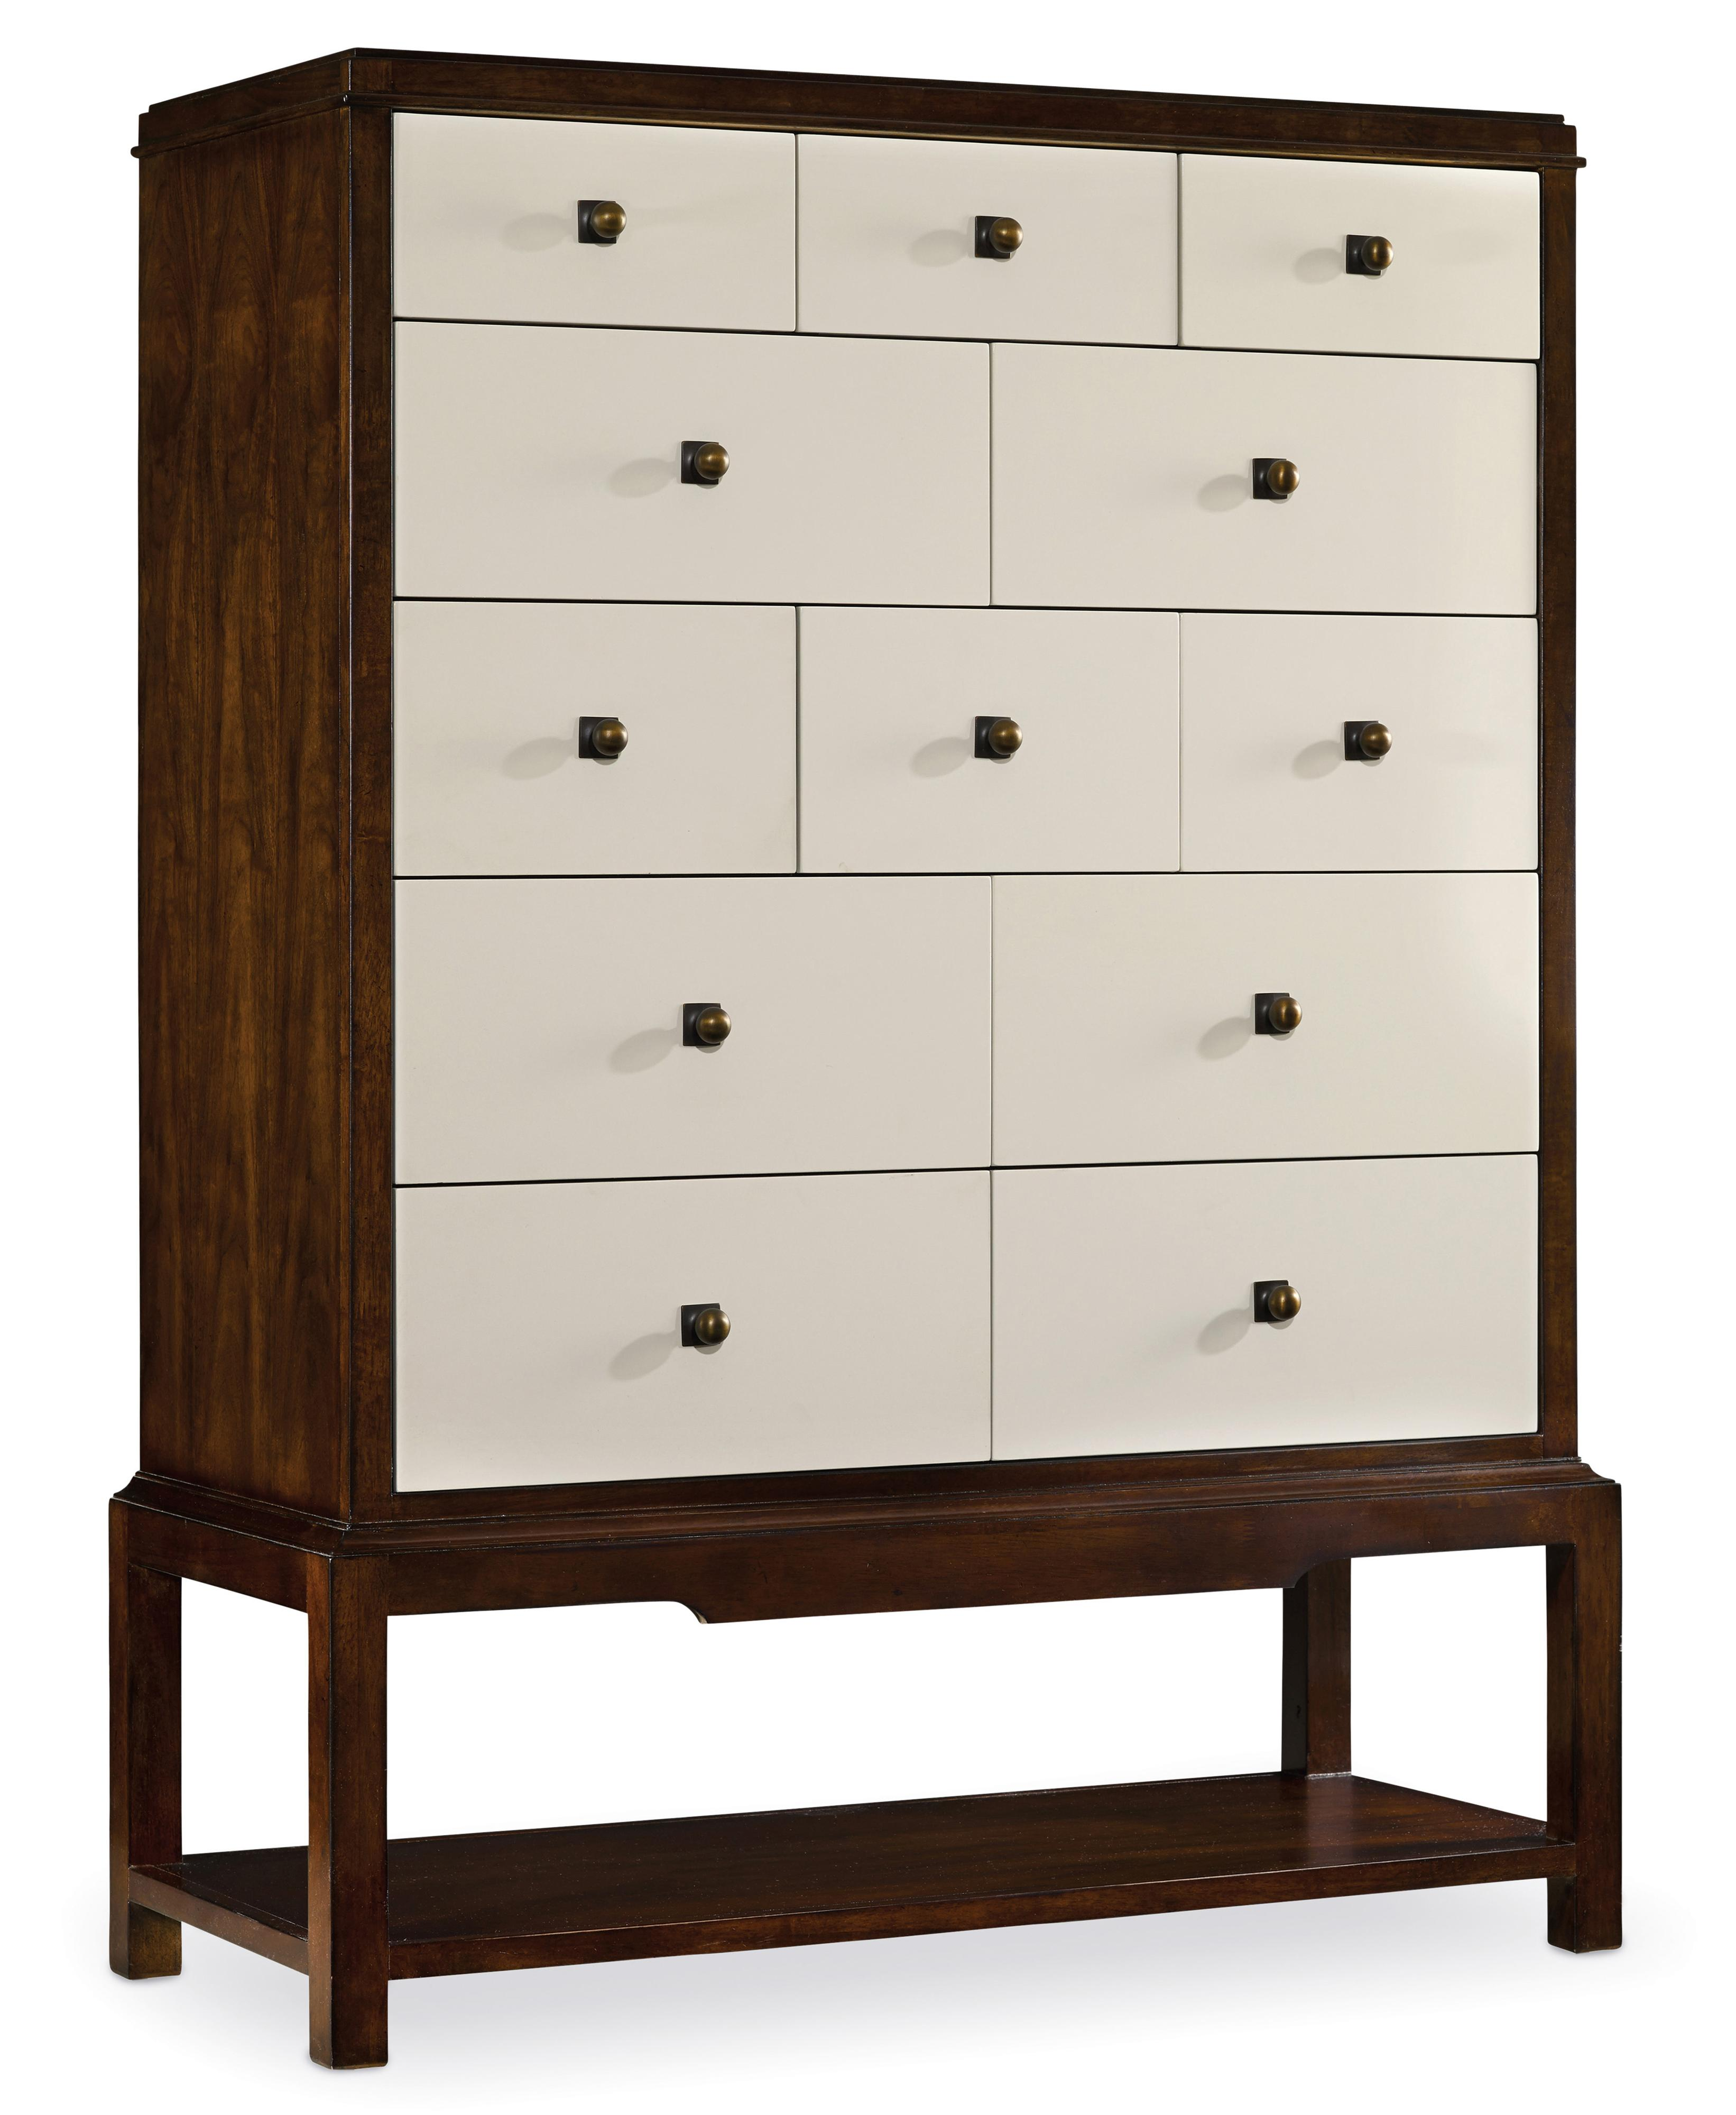 Hooker Furniture Palisade 12 Drawer Chest - Item Number: 5185-90110